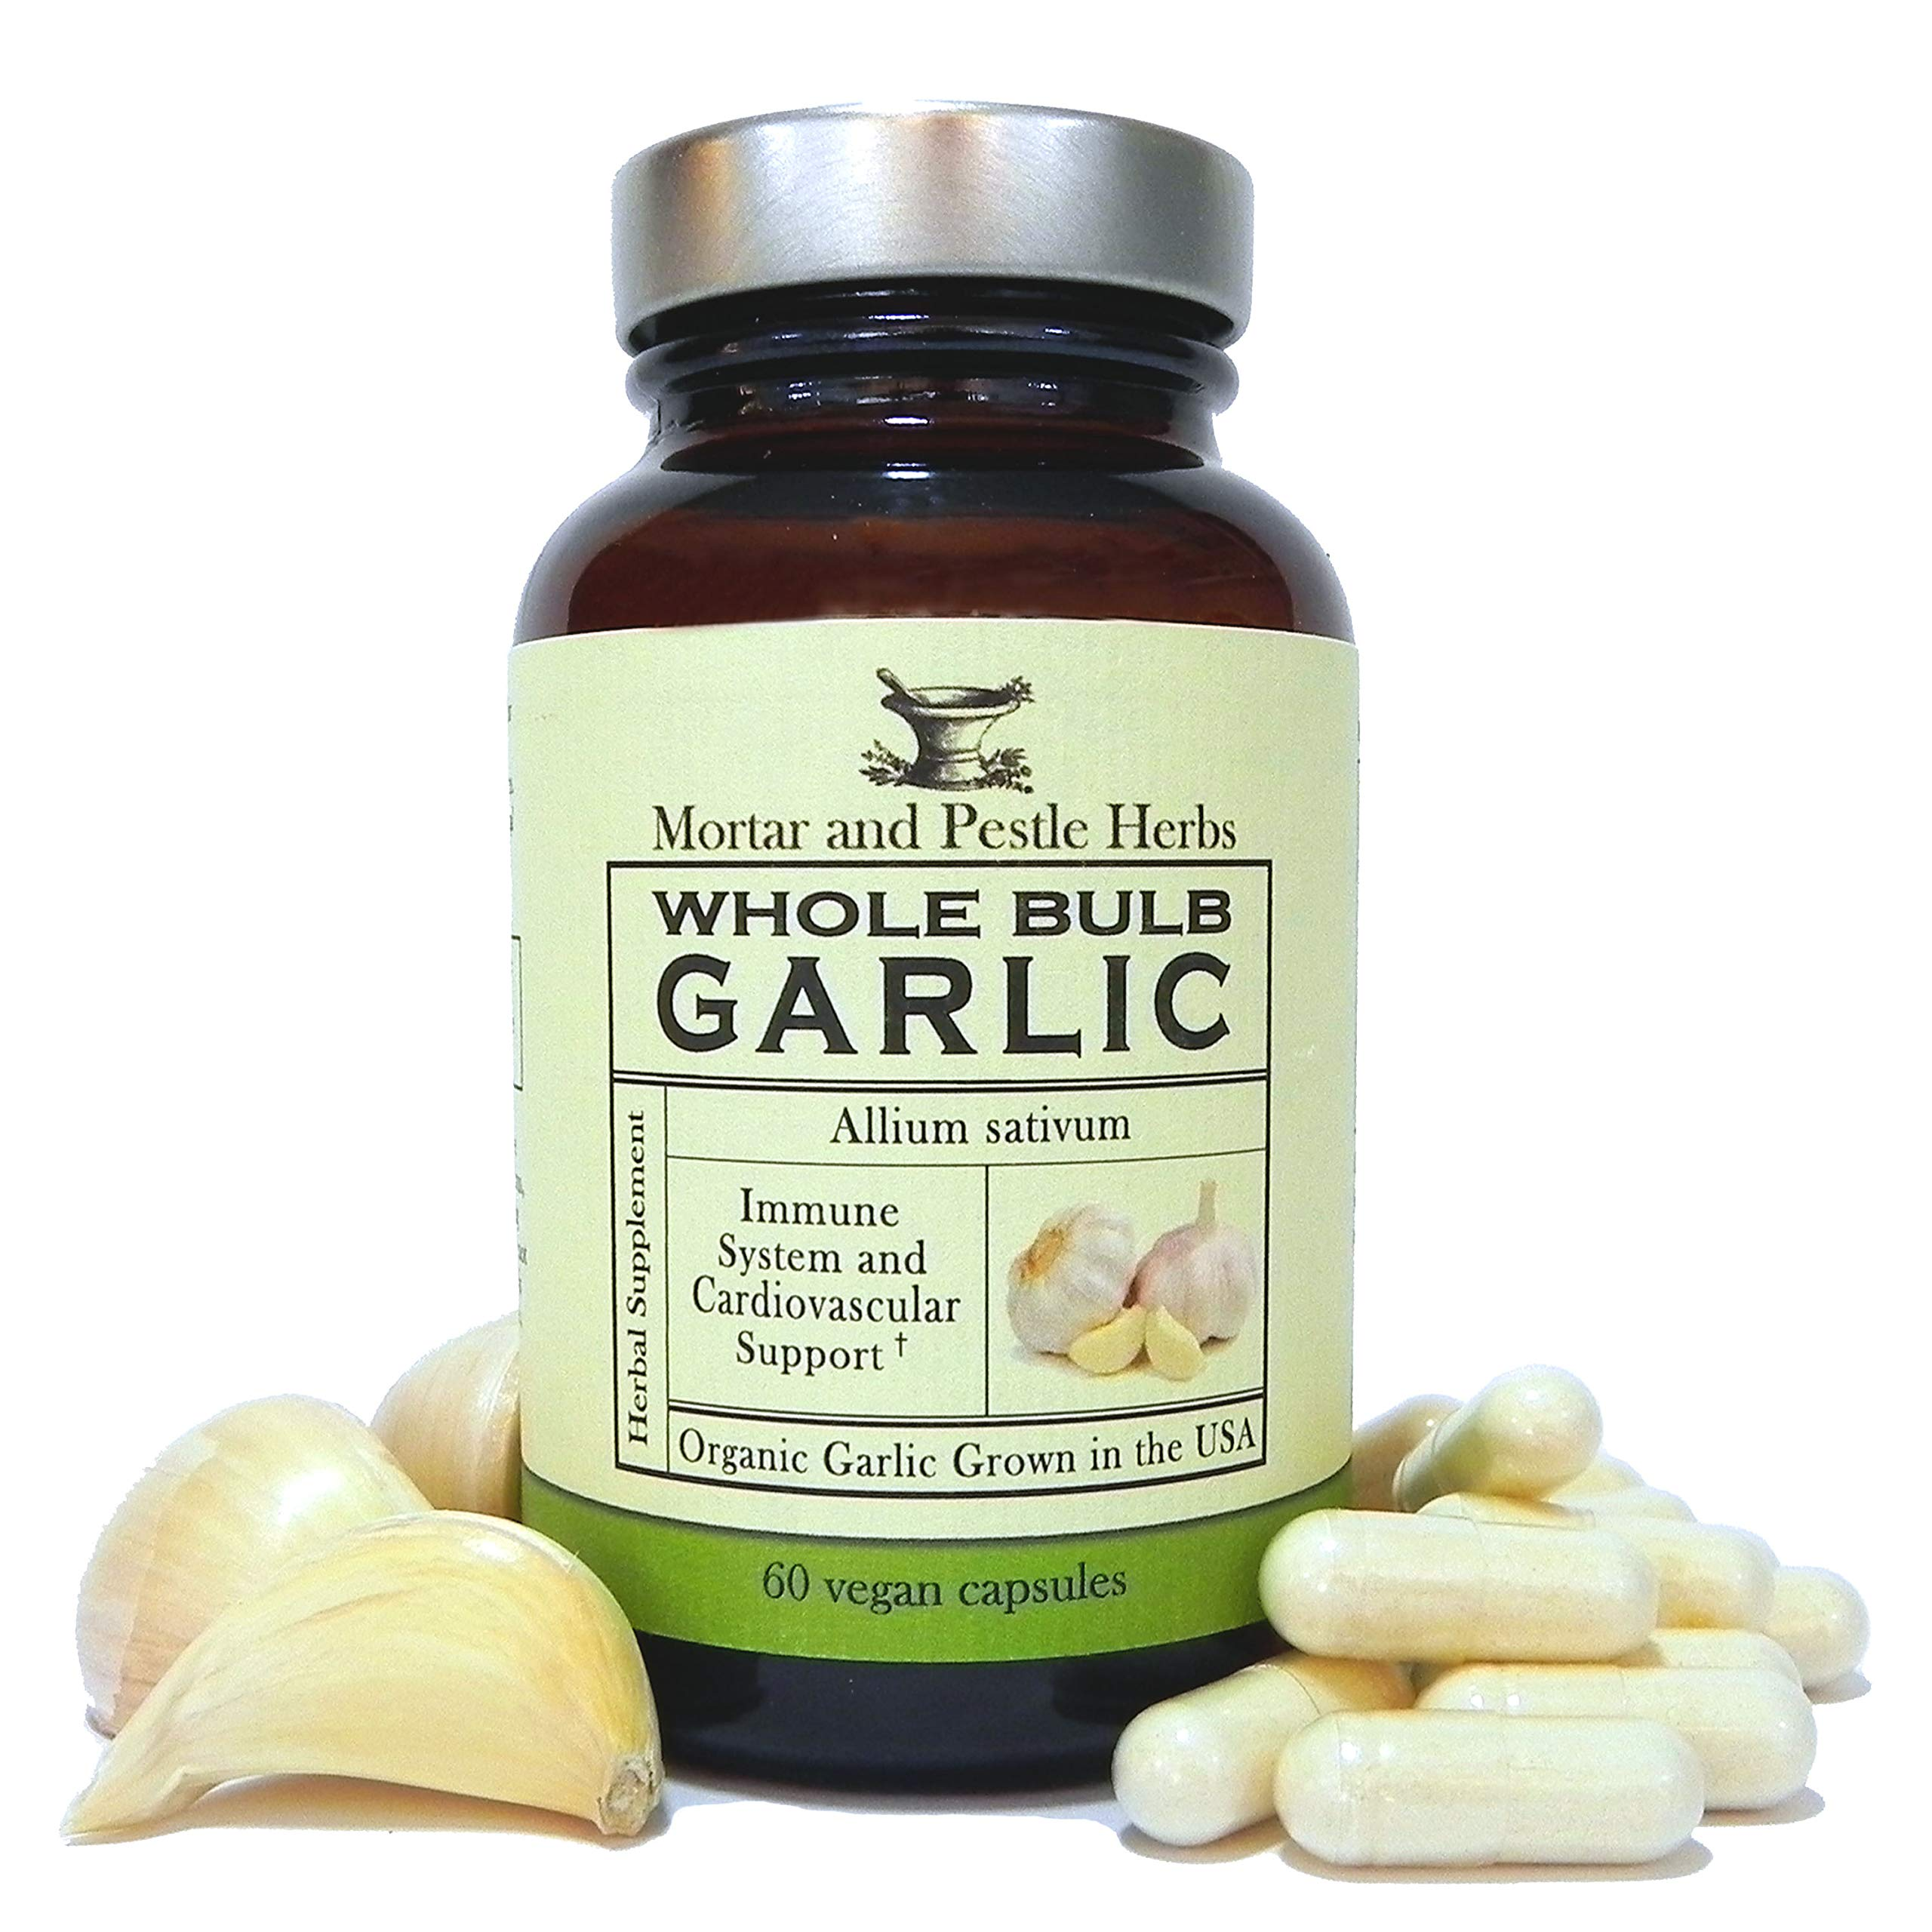 Mortar and Pestle Herbs Organic Whole Bulb Garlic Supplement Pills - Potent Extra Strength - Immune Support - 600 mg, 60 capsules - Made in the USA